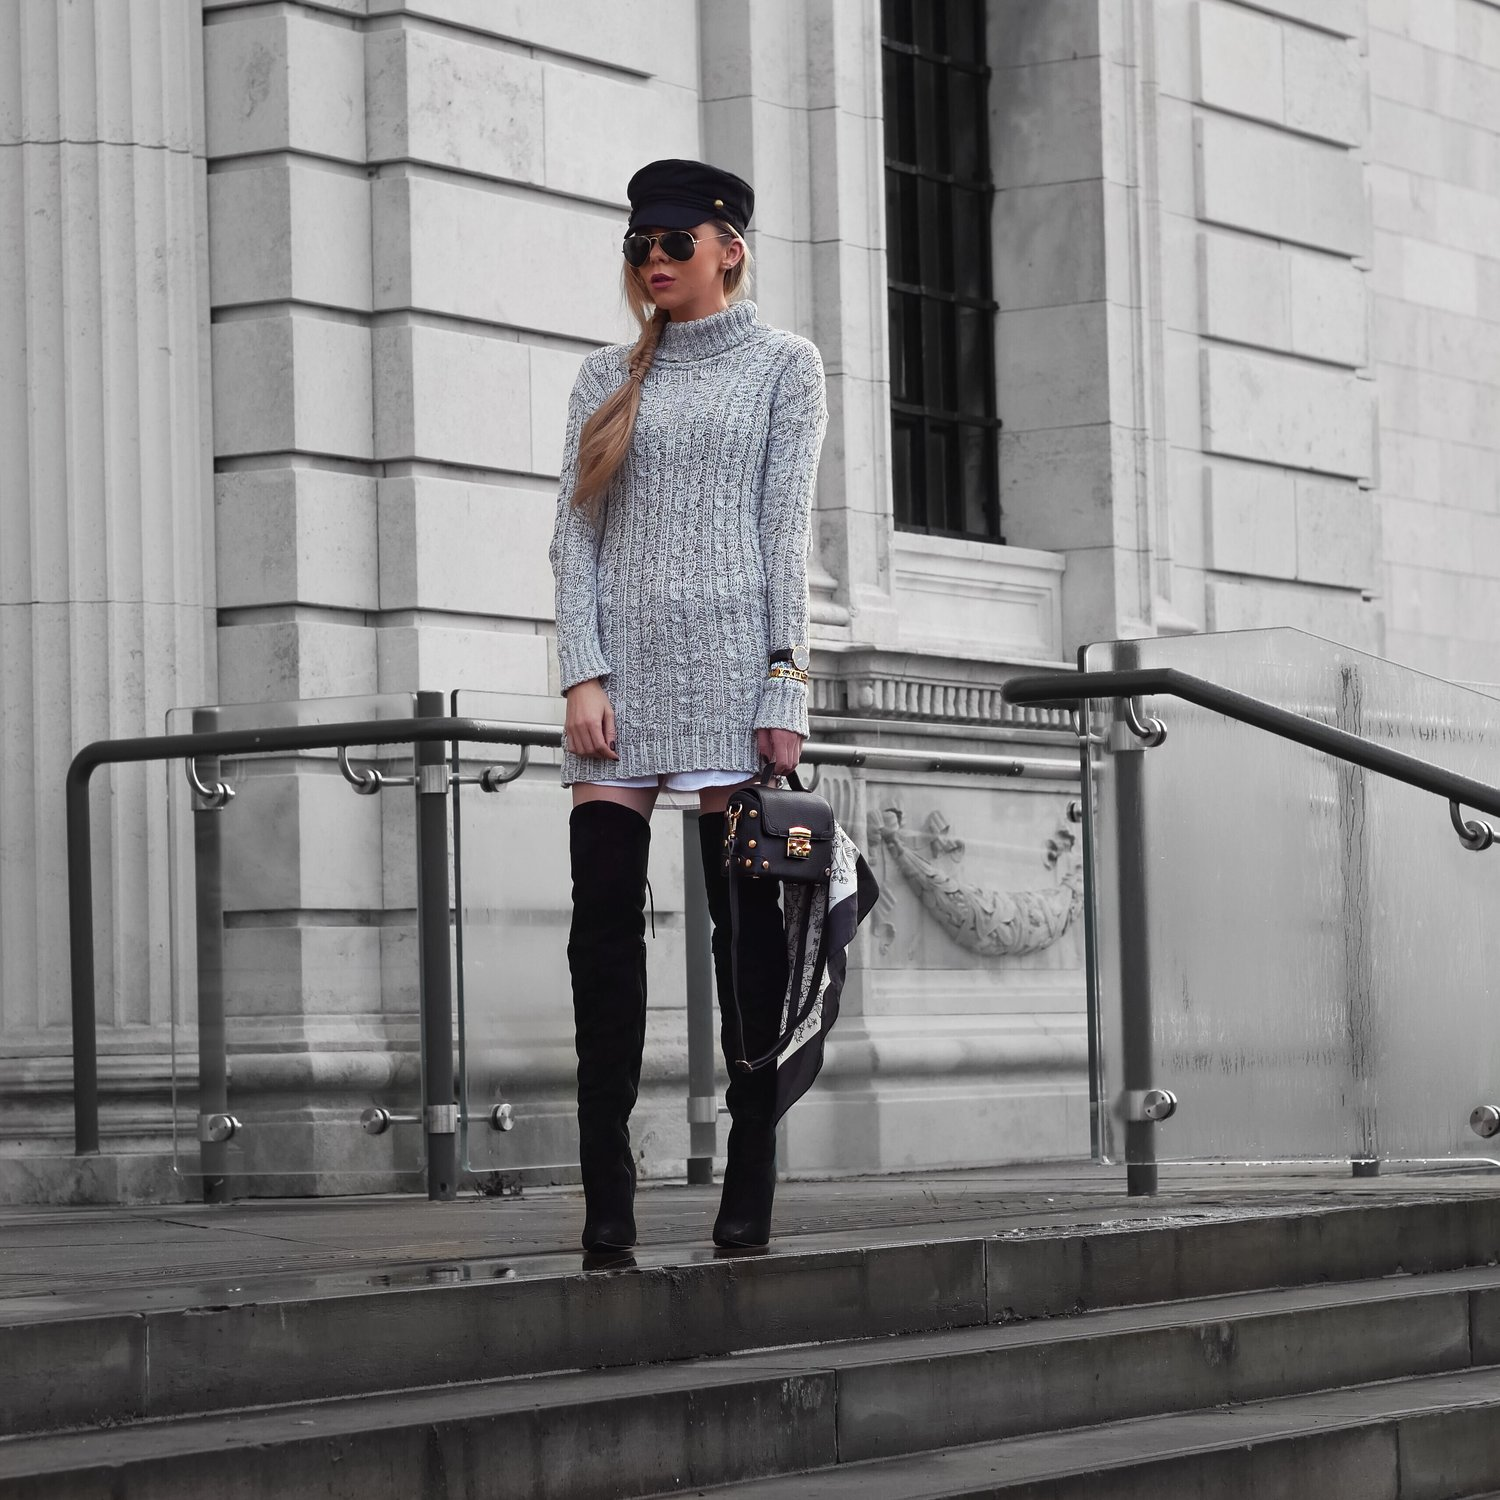 boohoo, affordable fashion, strretstyle, inspiration, what to wear, fashion, lookbook, style, fashion blogger, laura blair, youtuber, london fashion girl